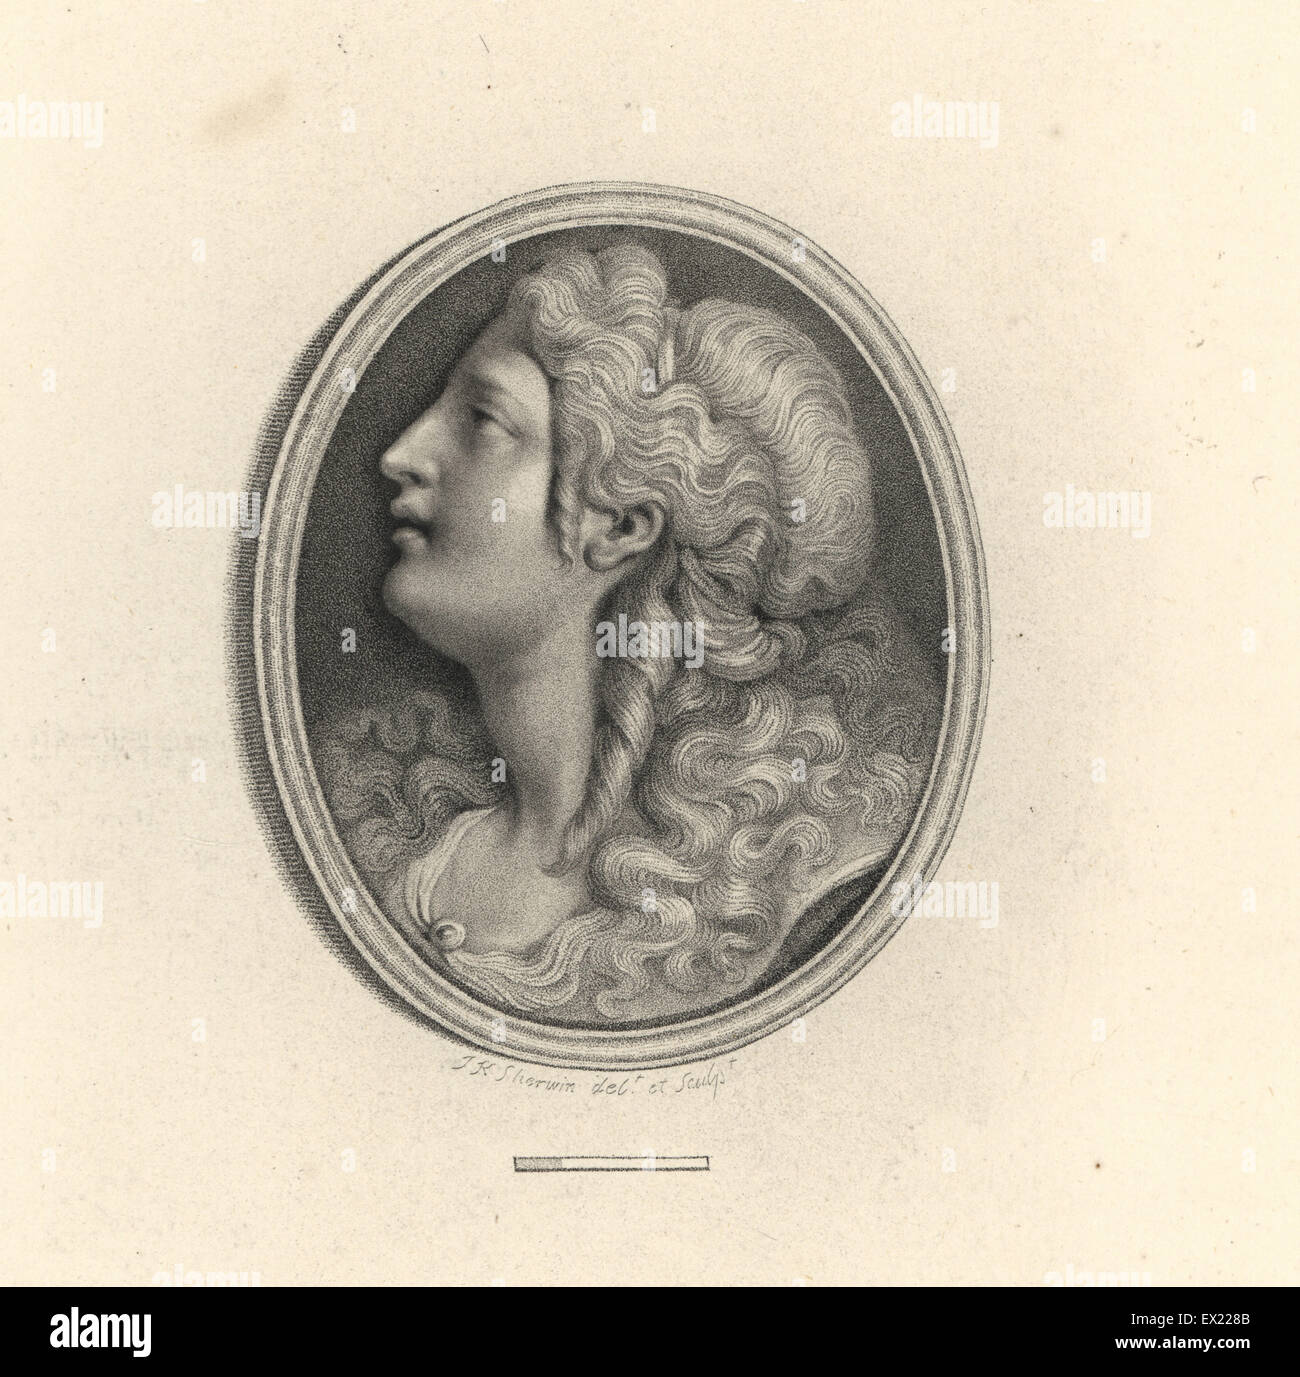 Portrait of Poppaea Sabina Roman Empress wife to Nero with diadem and ringlets. Drawn and engraved by J.K. Sherwin. Copperplate engraving from 108 Plates ...  sc 1 st  Alamy & Portrait of Poppaea Sabina Roman Empress wife to Nero with diadem ...